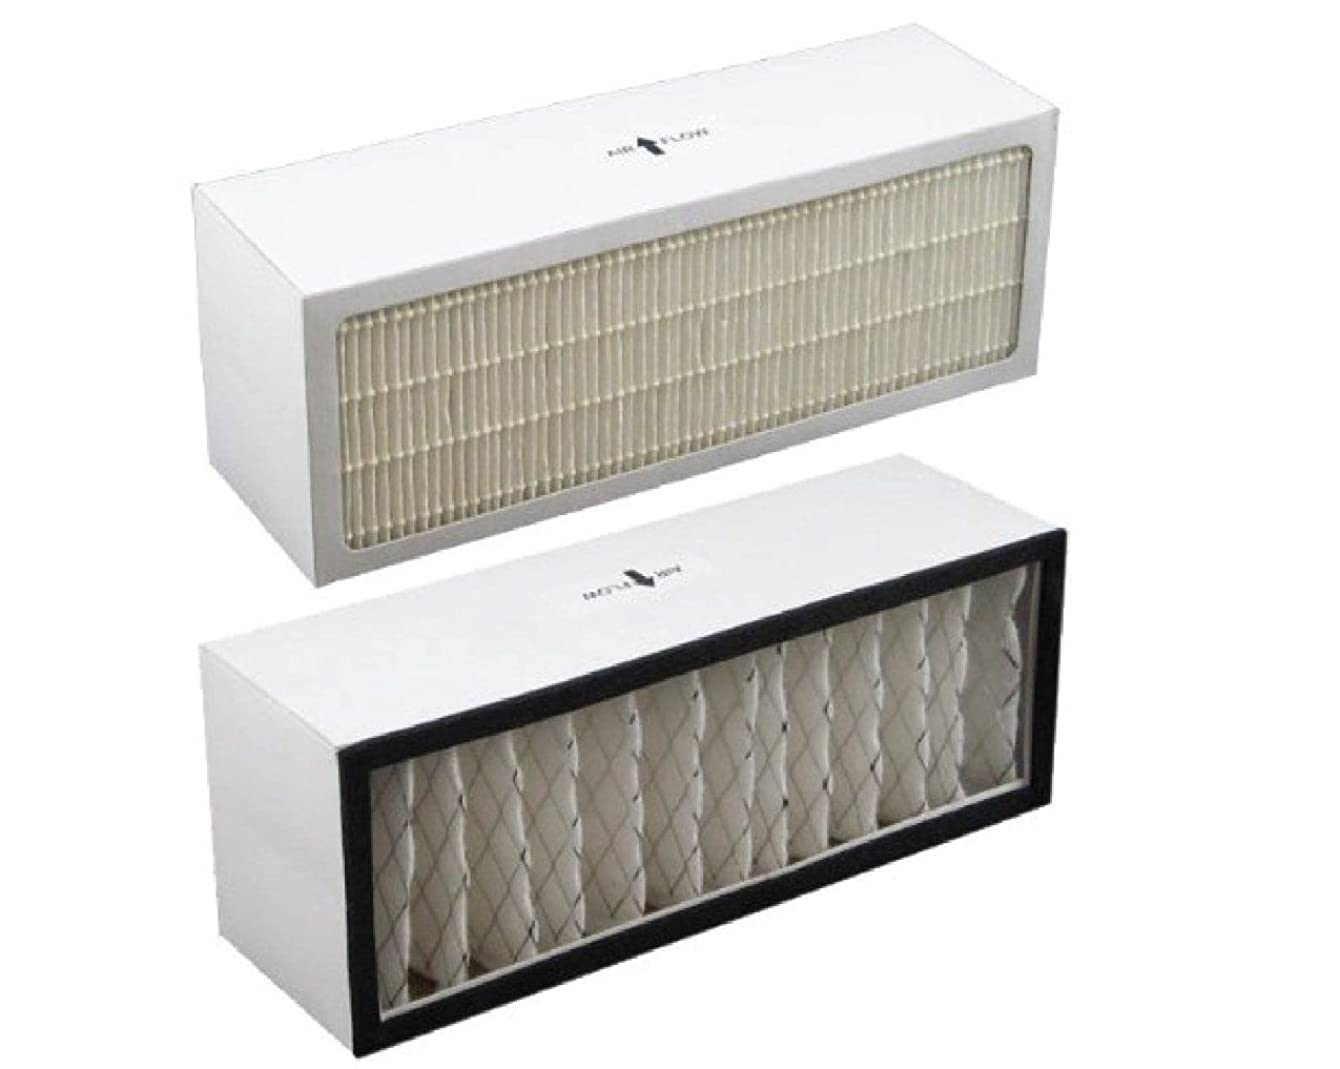 Replacement Filter A1001B to fit Bionaire models LC1060 & LE1160 Air Cleaner Dual Filter Cartridge by LifeSupplyUSA